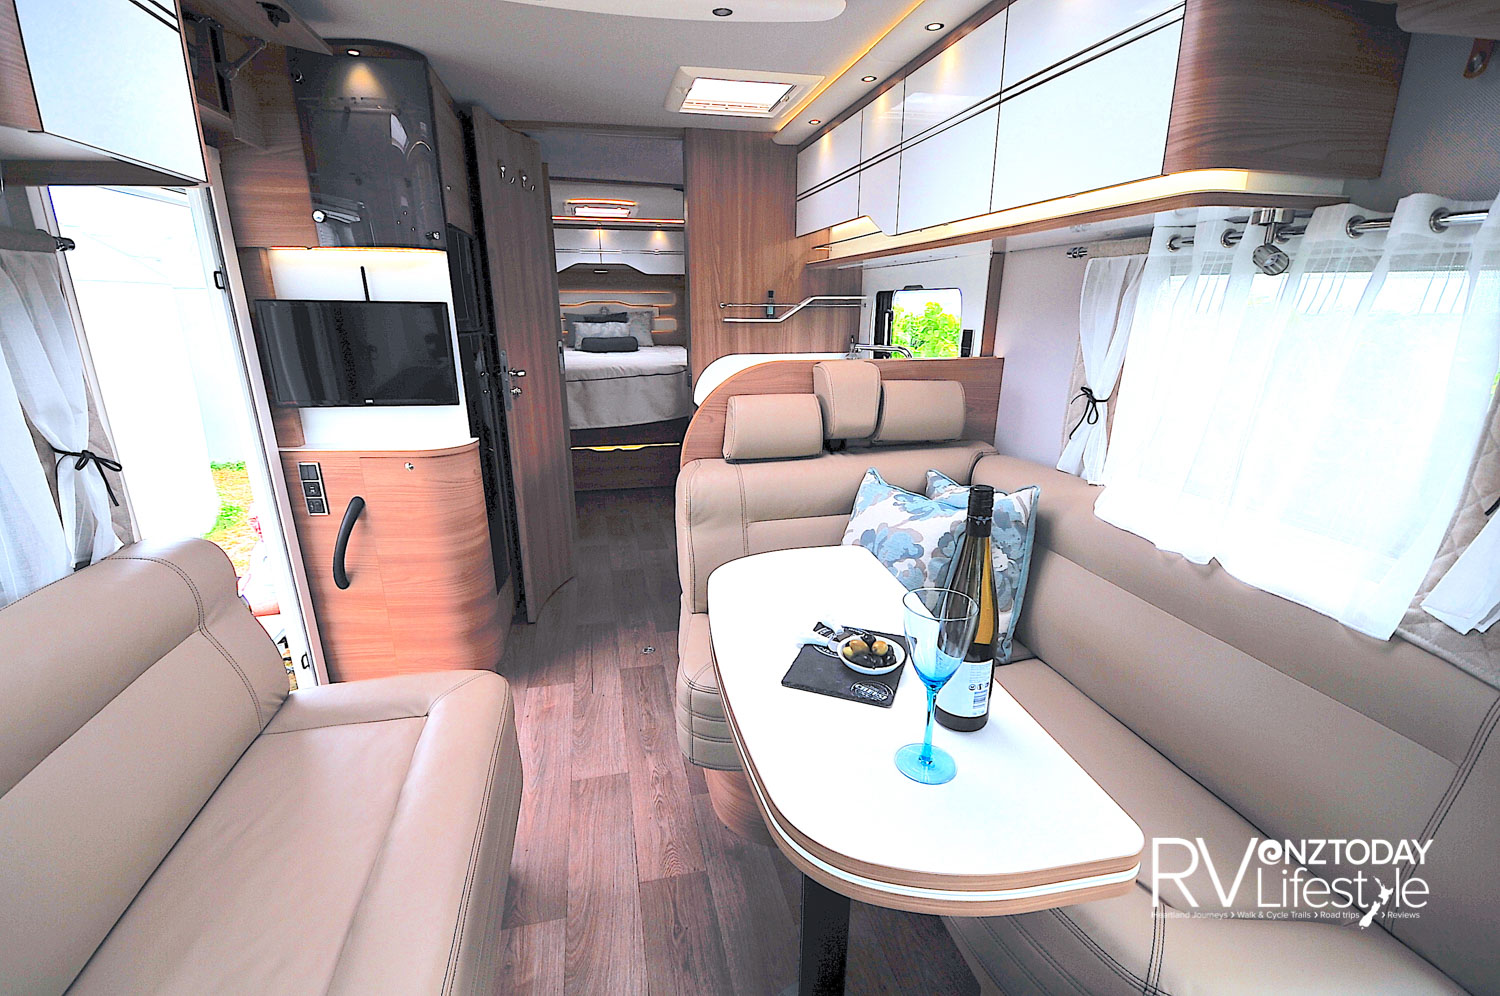 The long couches offer this area genuine feet-up relaxing comfort. The adjustable table is fantastic as well. Upon entry the TV is to the left, pull-out storage beneath, monitor cupboard above the door, a second lounge seating area between the driver's swivel cab seat and the habitation entry door